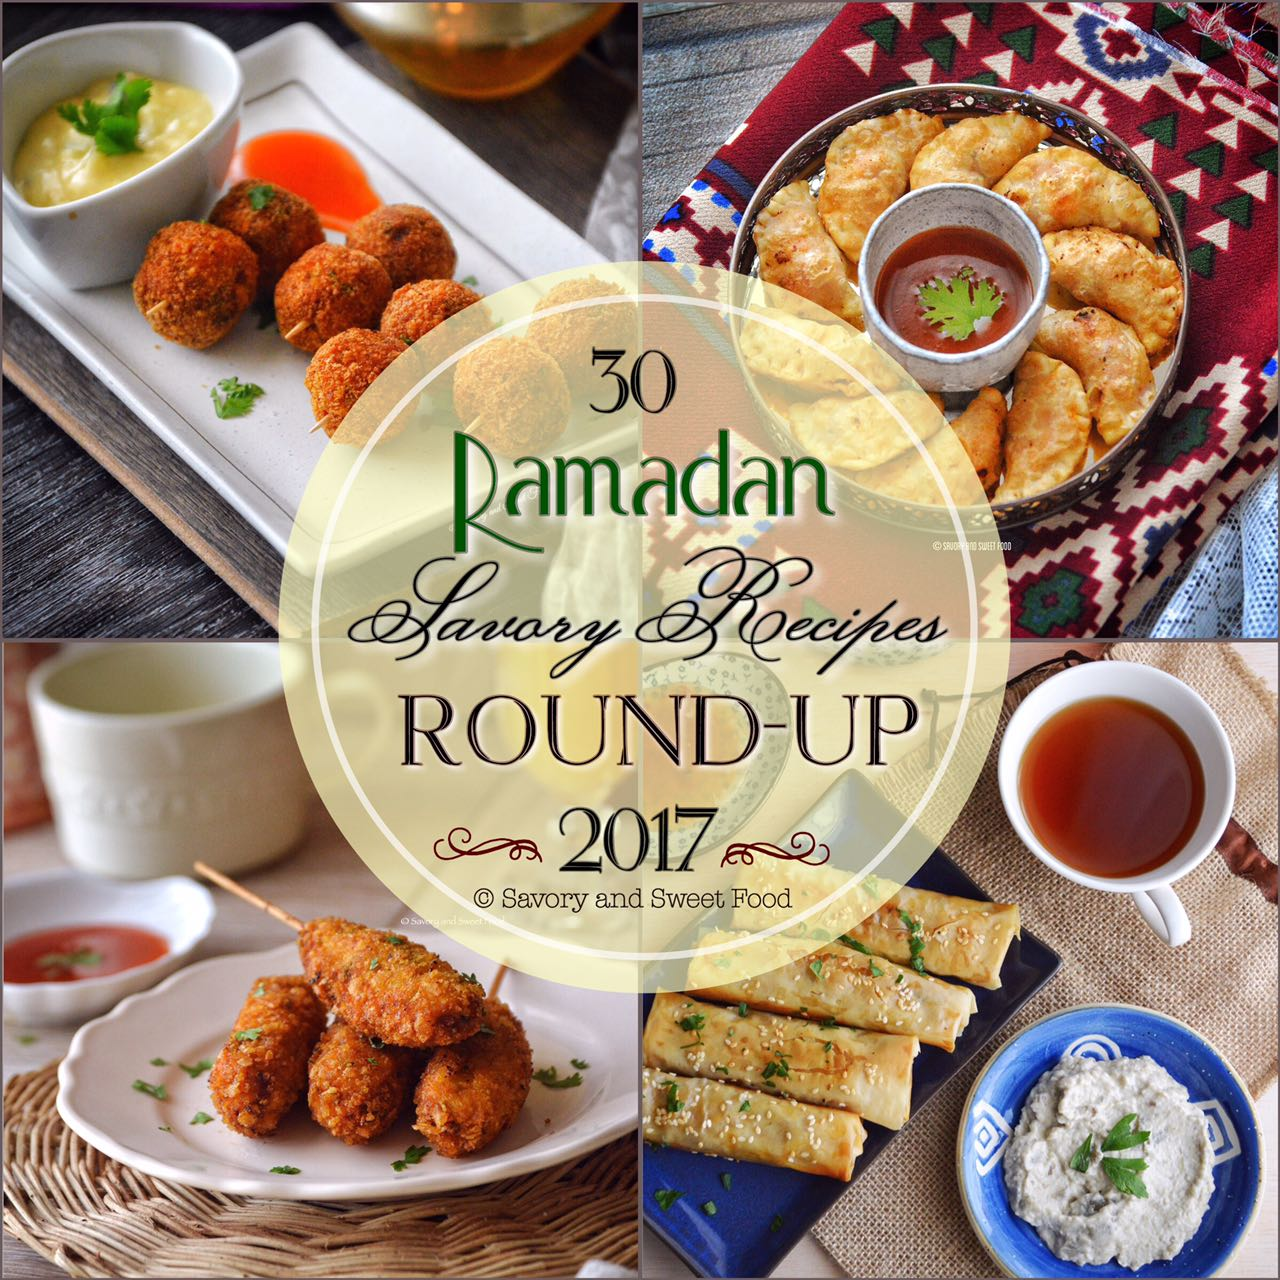 Ramadan recipes round up 2017 savory savorysweetfood so to get you in the mood for whats coming up later in this years ramadan series here is the round up of 30 ramadan savory recipes from previous years forumfinder Image collections